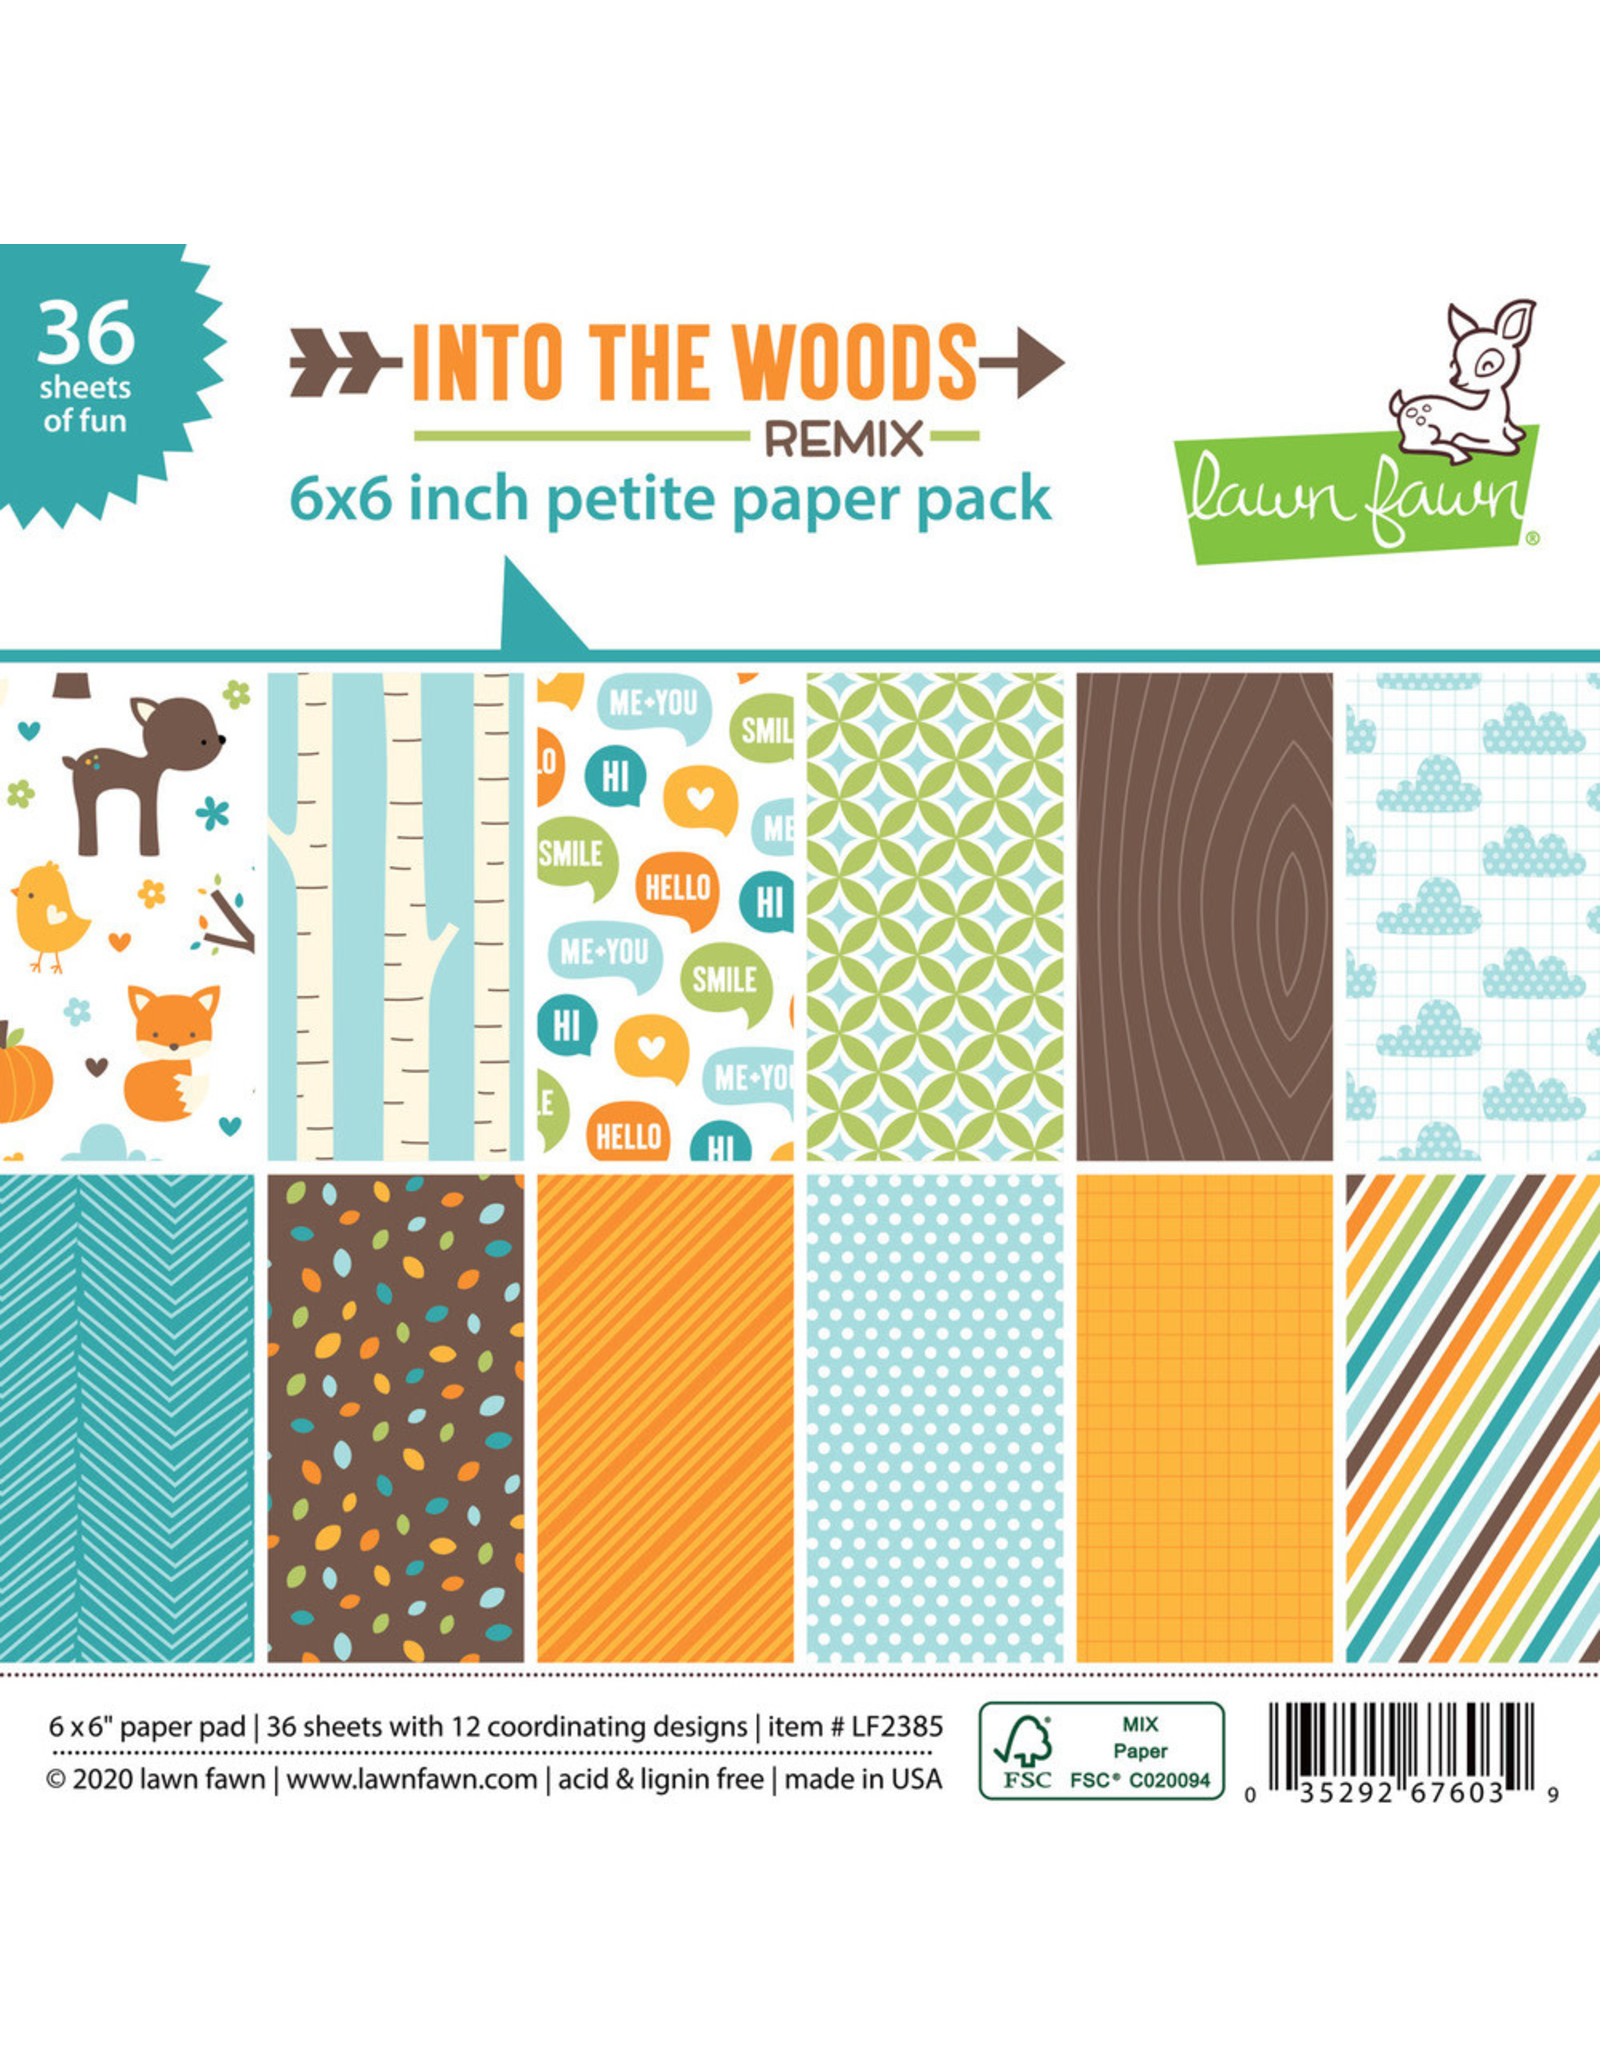 Lawn Fawn 6X6 Petite Paper Pack, Into The Woods Remix